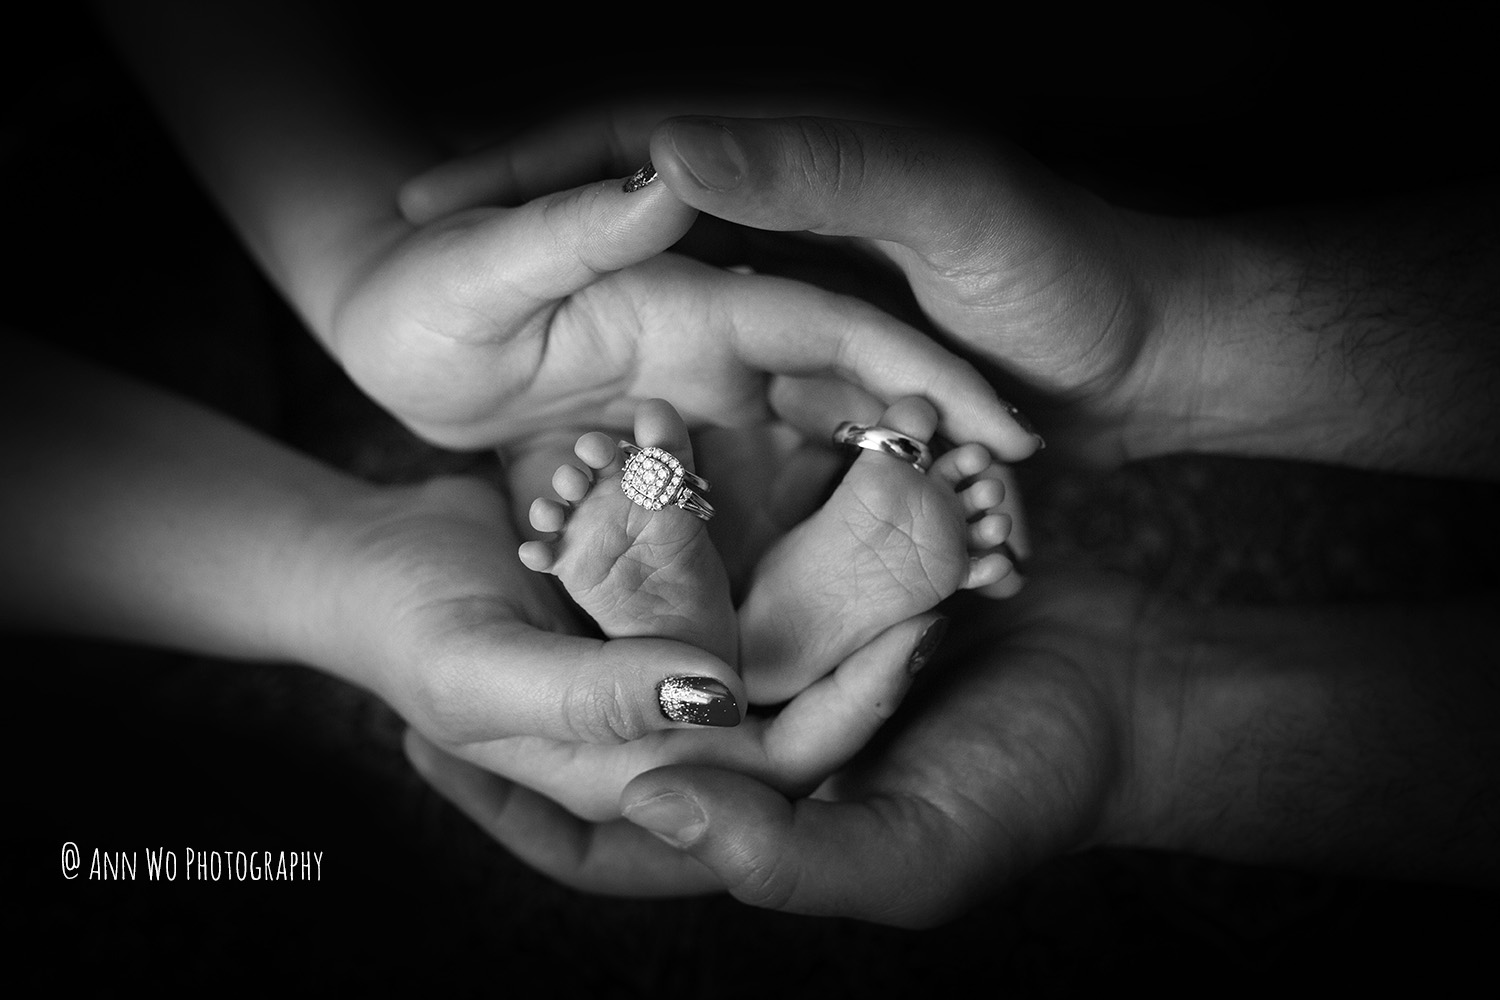 newborn-photography-london-ann-wo-04.jpg